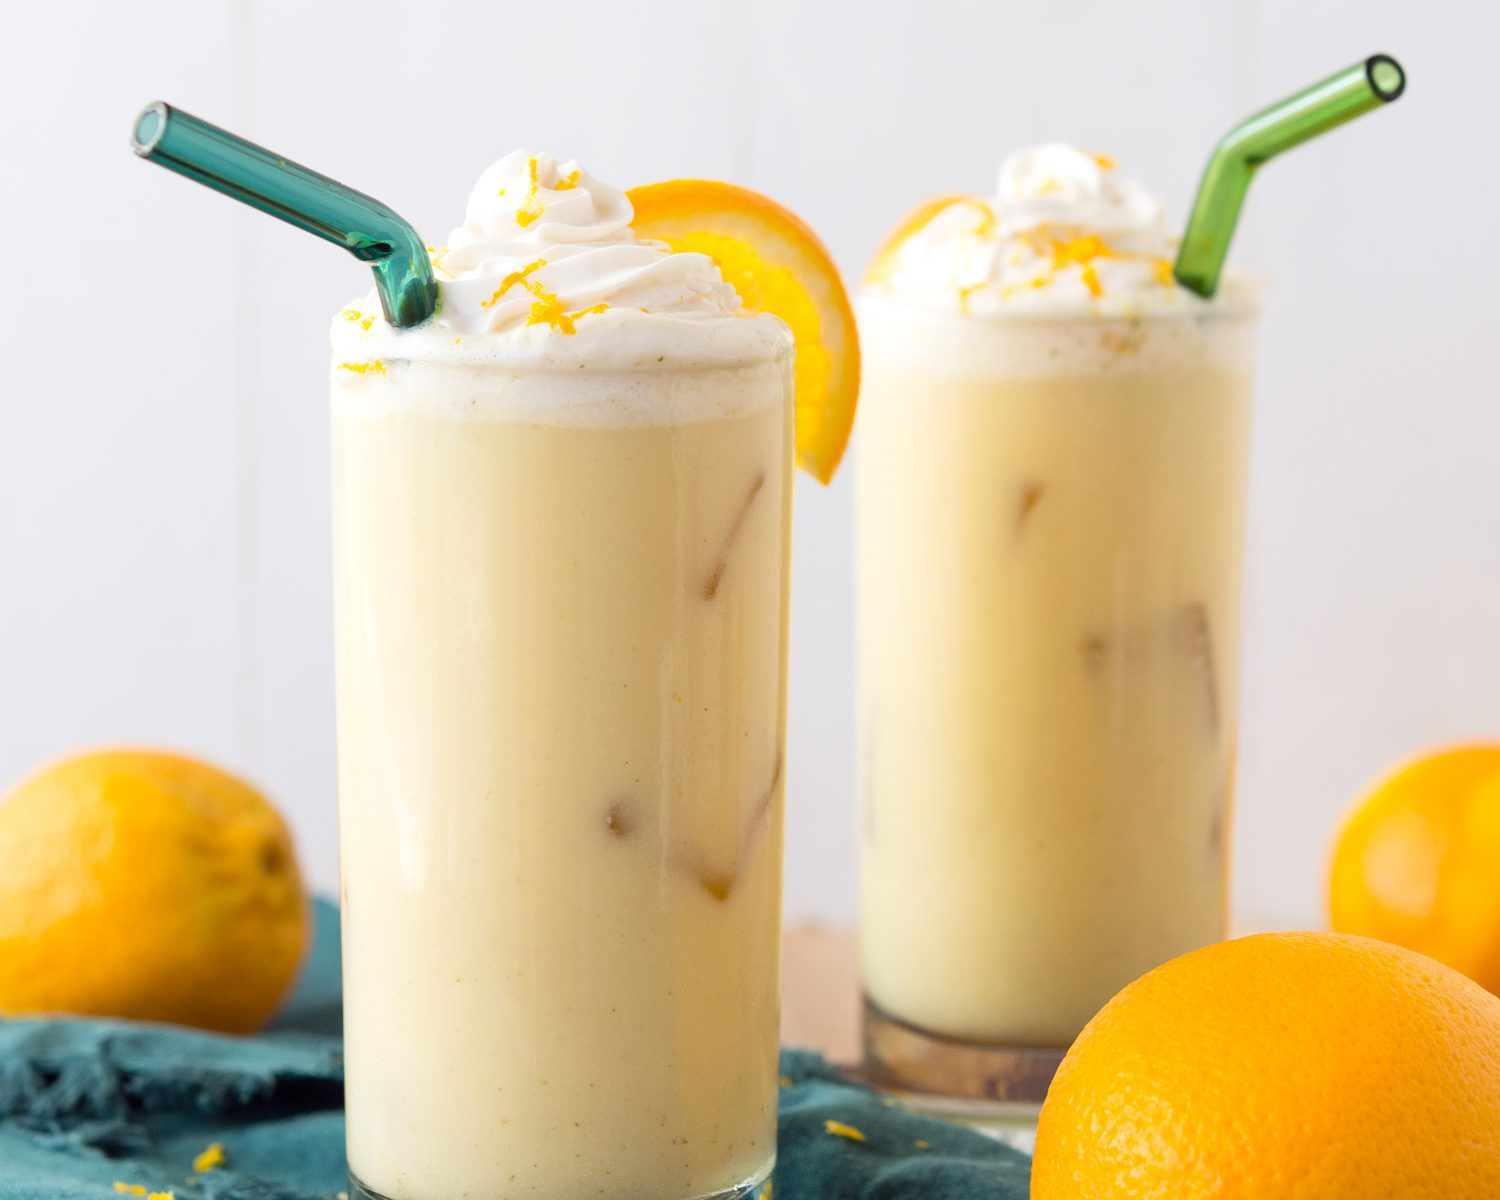 This Spiked Orange Julius is the perfect summer cocktail! Cool, creamy, refreshing and delicious. #ilovemysilk #vegan #glutenfree